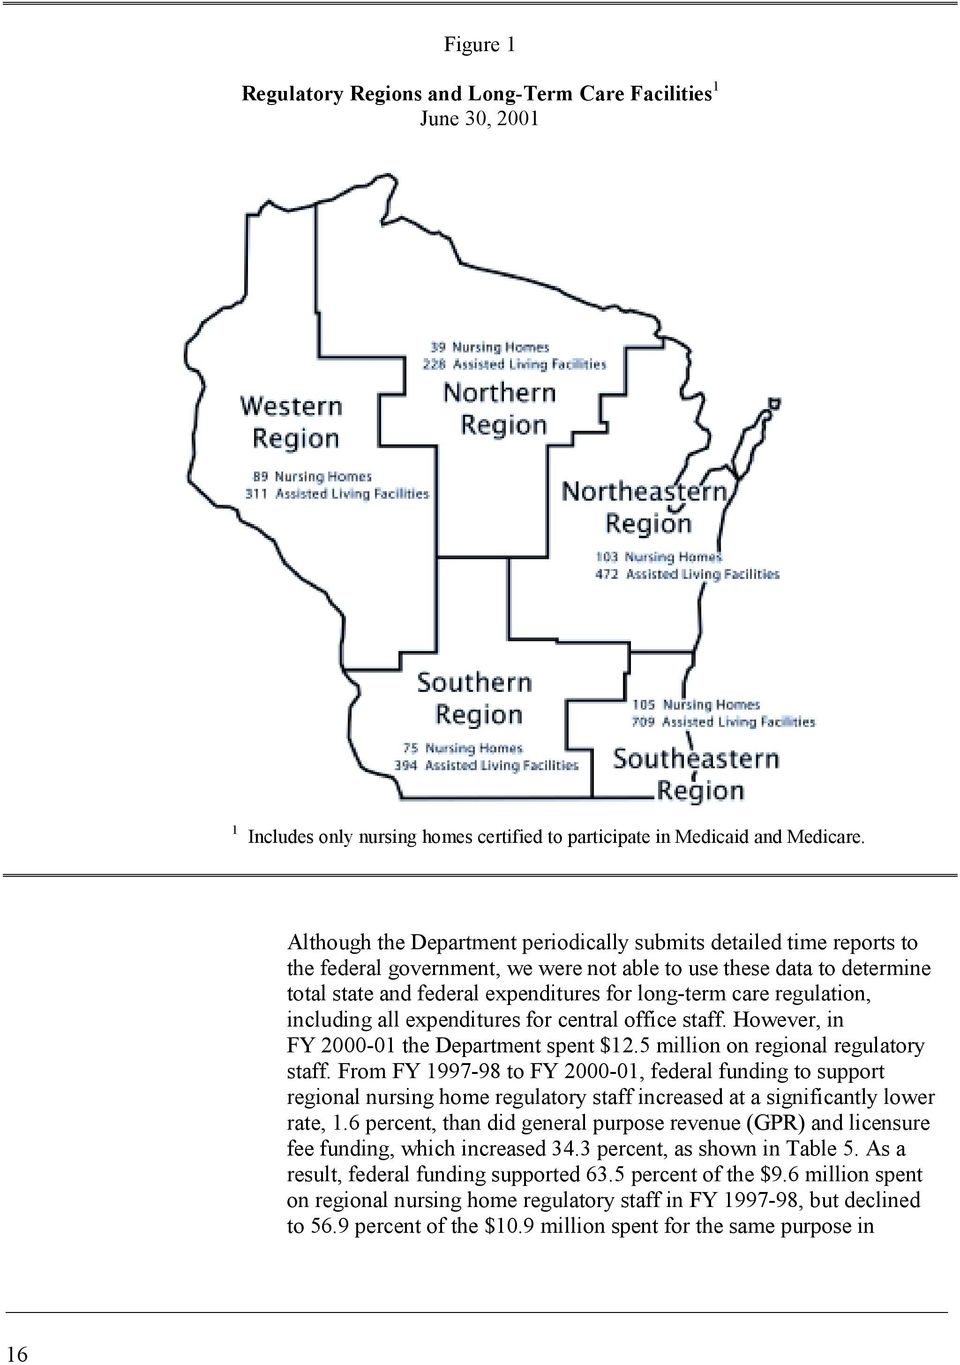 regulation, including all expenditures for central office staff. However, in FY 2000-01 the Department spent $12.5 million on regional regulatory staff.